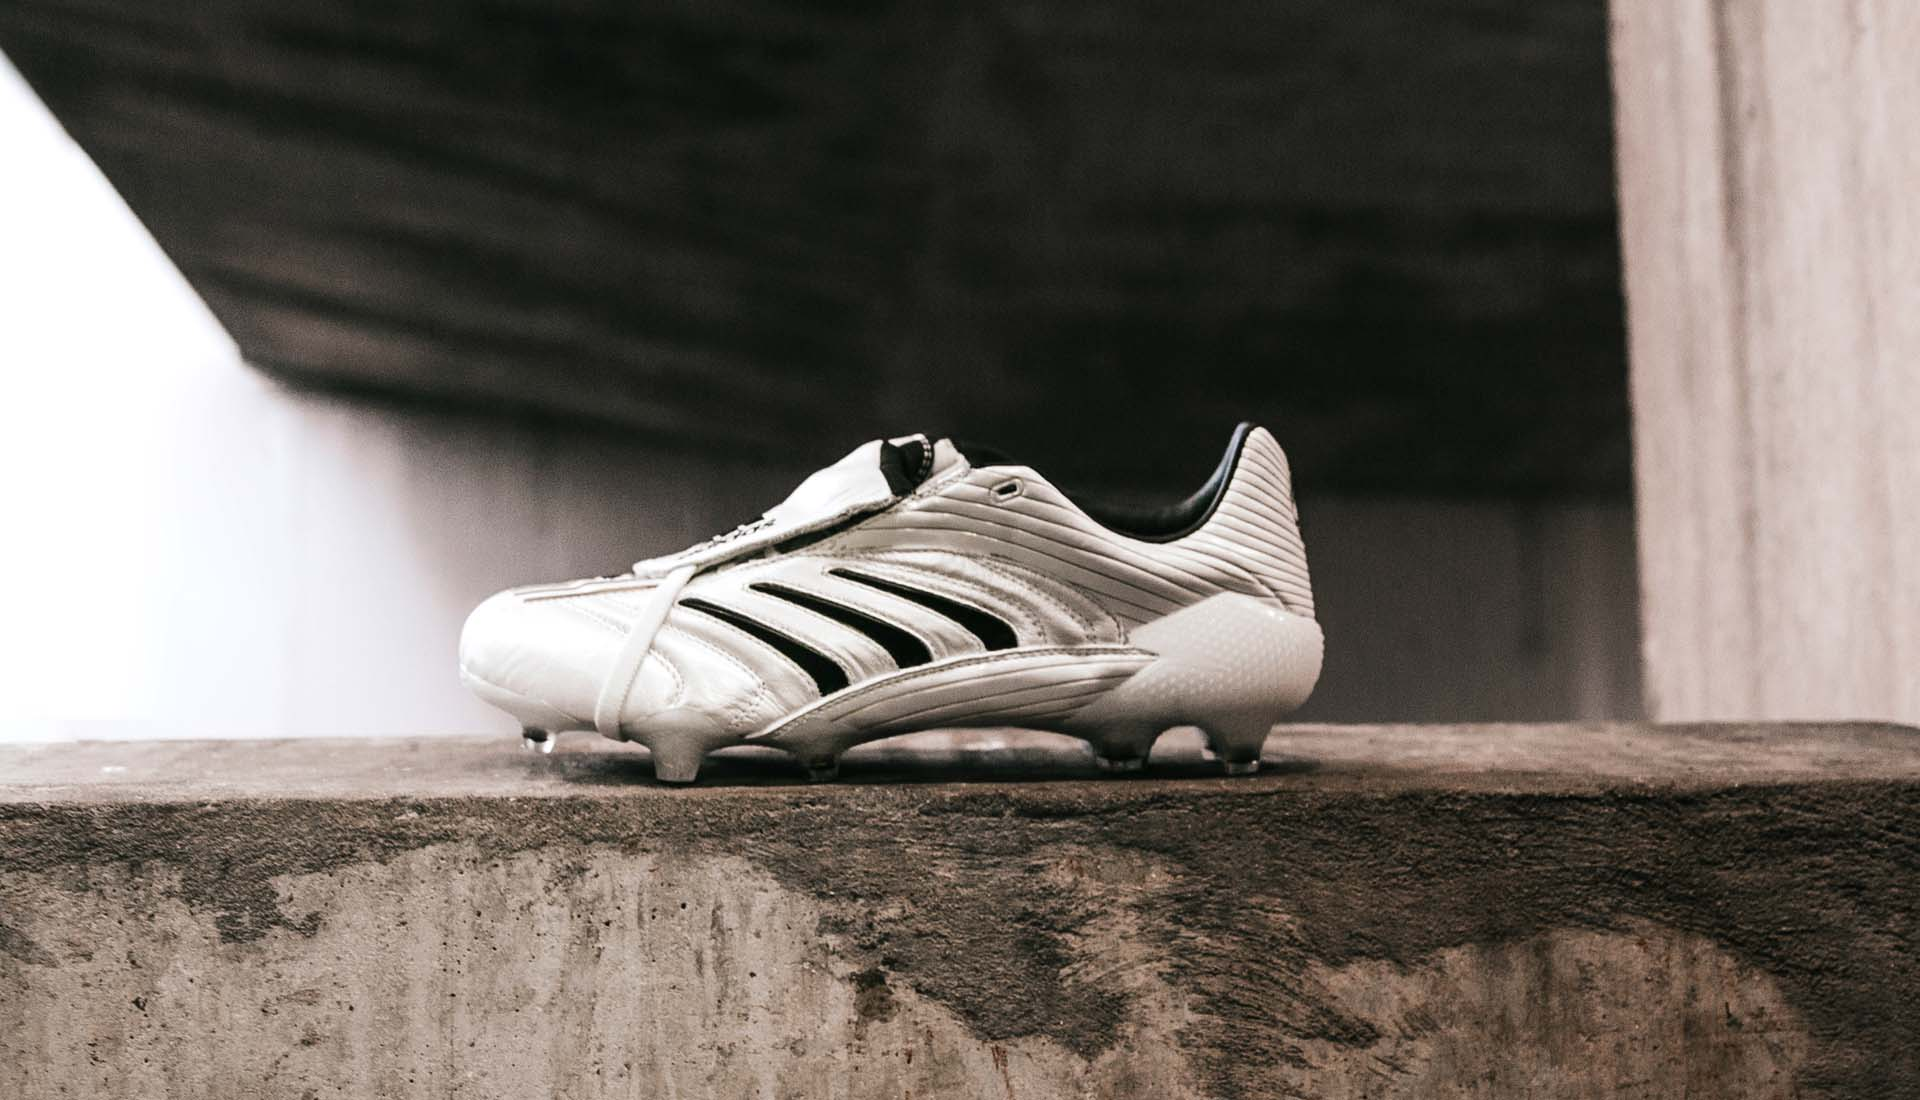 Giày đá bóng Adidas Predator Absolute 20 - White / Black / Metallic Gold